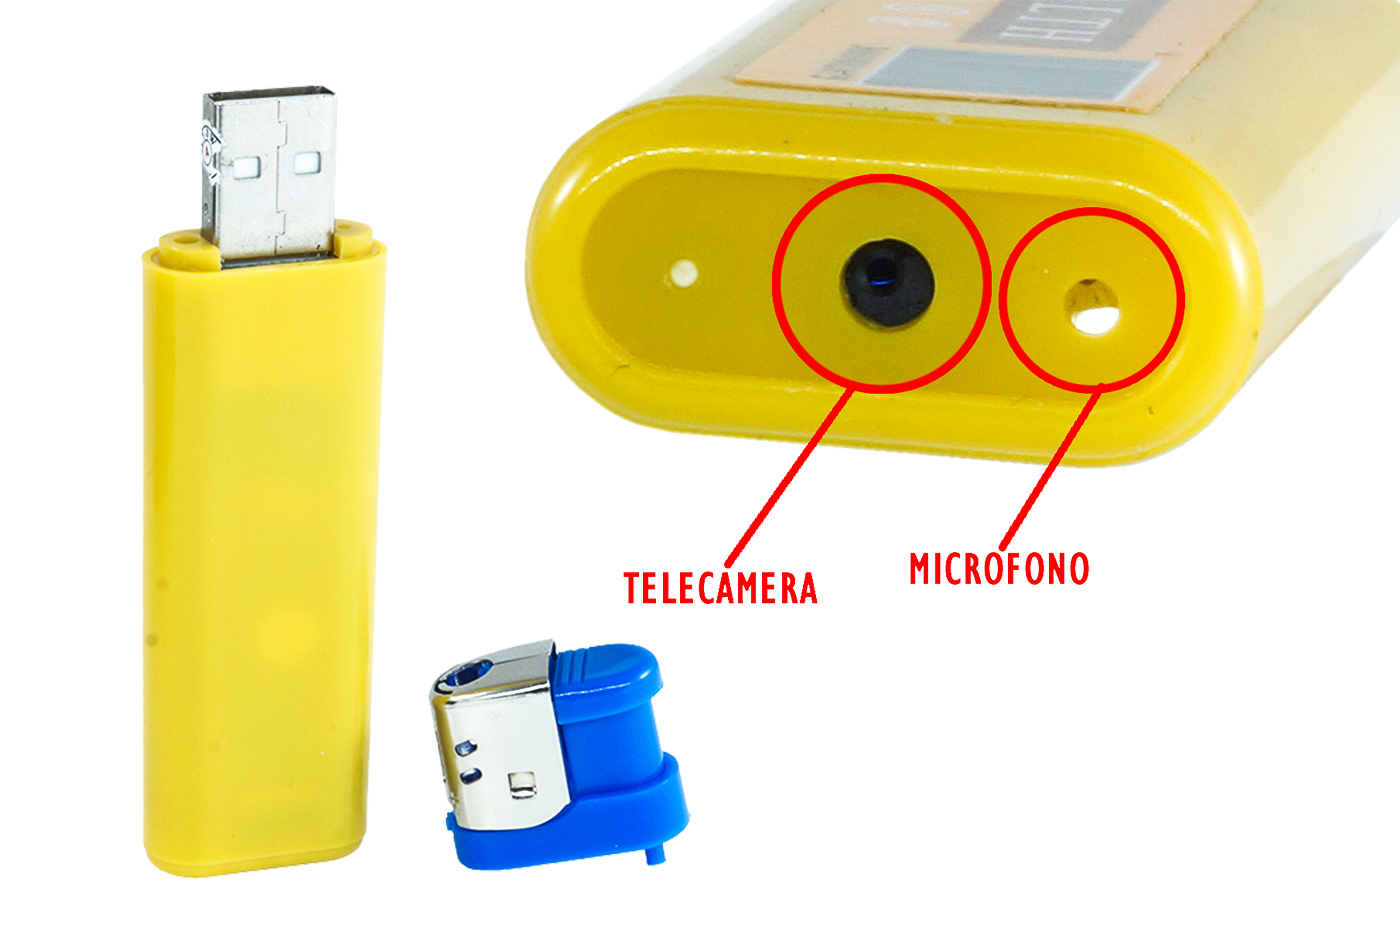 ACCENDINO MINI CAM MICROSPIA VIDEOCAMERA NASCOSTA USB SPY SPIA AUDIO FOTO VIDEO